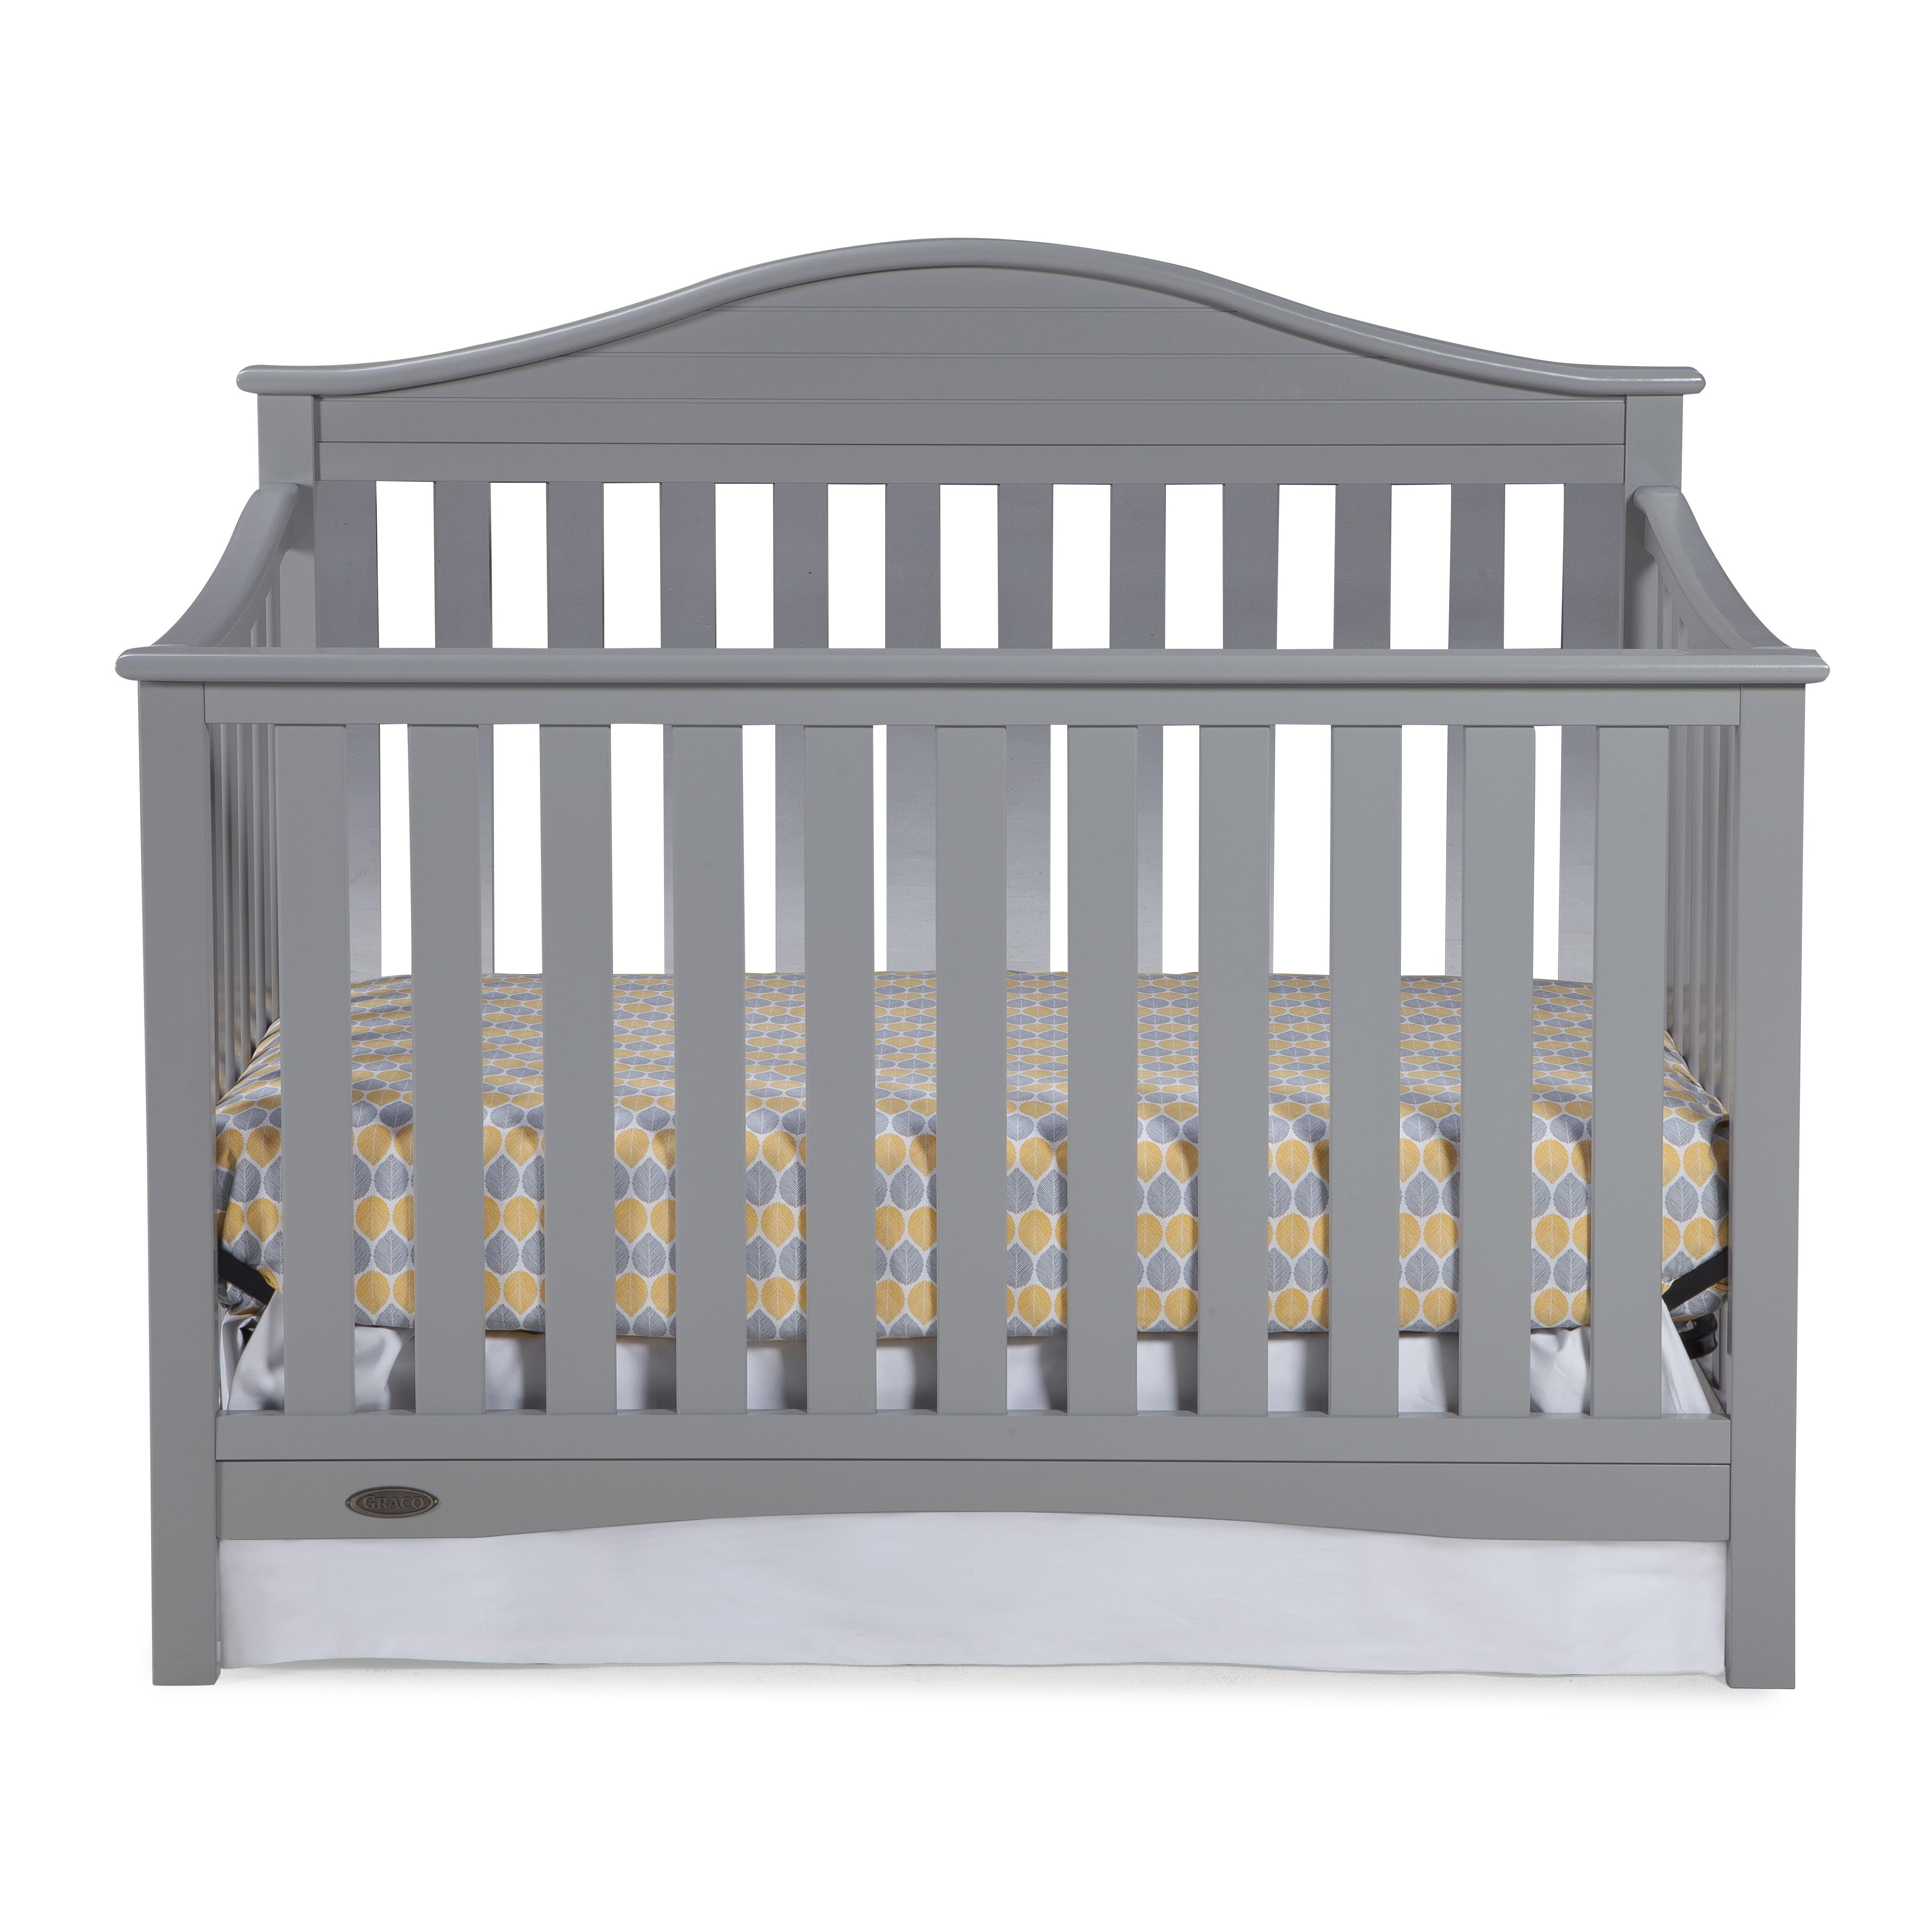 Crib for life prices - Graco Harbor Lights 4 In 1 Convertible Crib